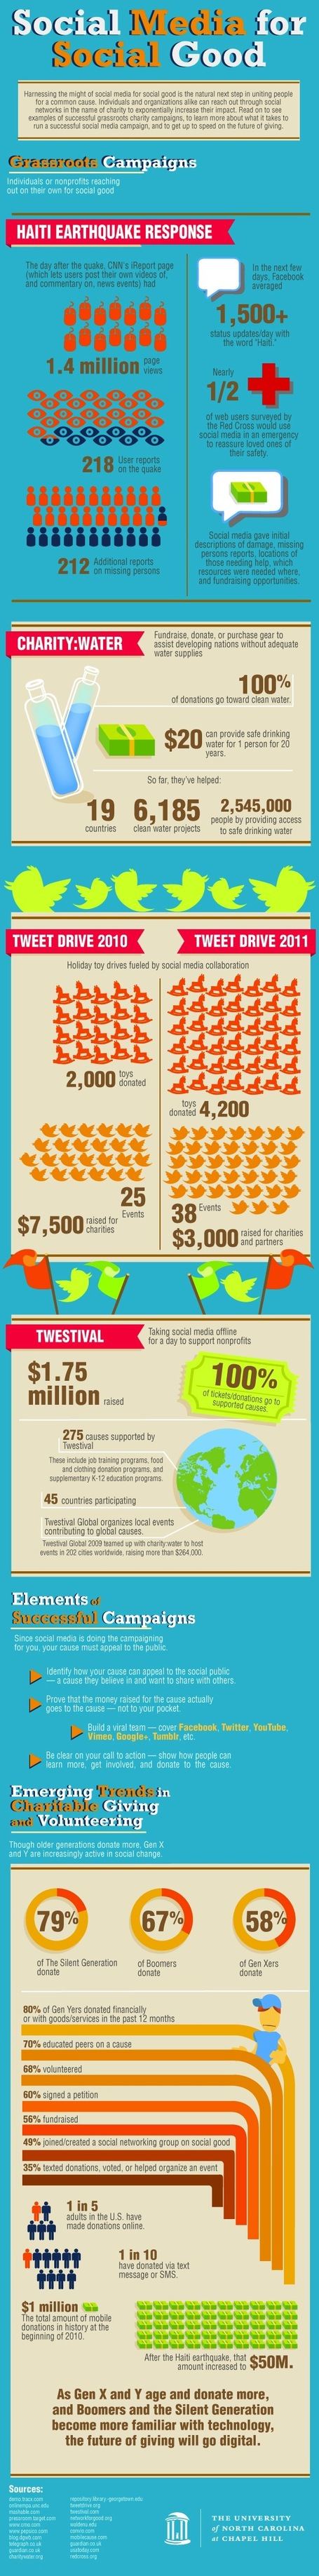 INFOGRAFÍA: Social Media for Social Good | Salud Social Media | Scoop.it